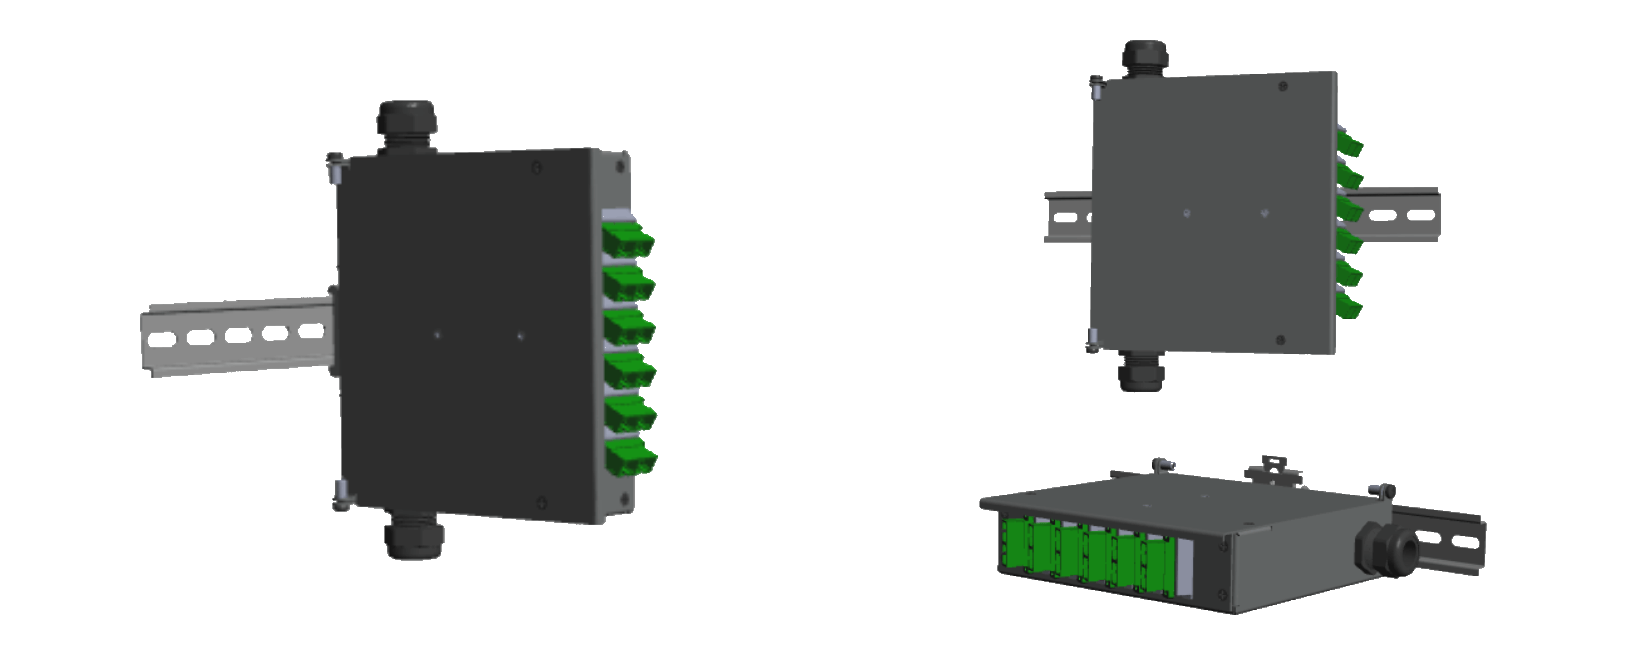 P1-SC-DX 12 FO Termination Box Mounting Options